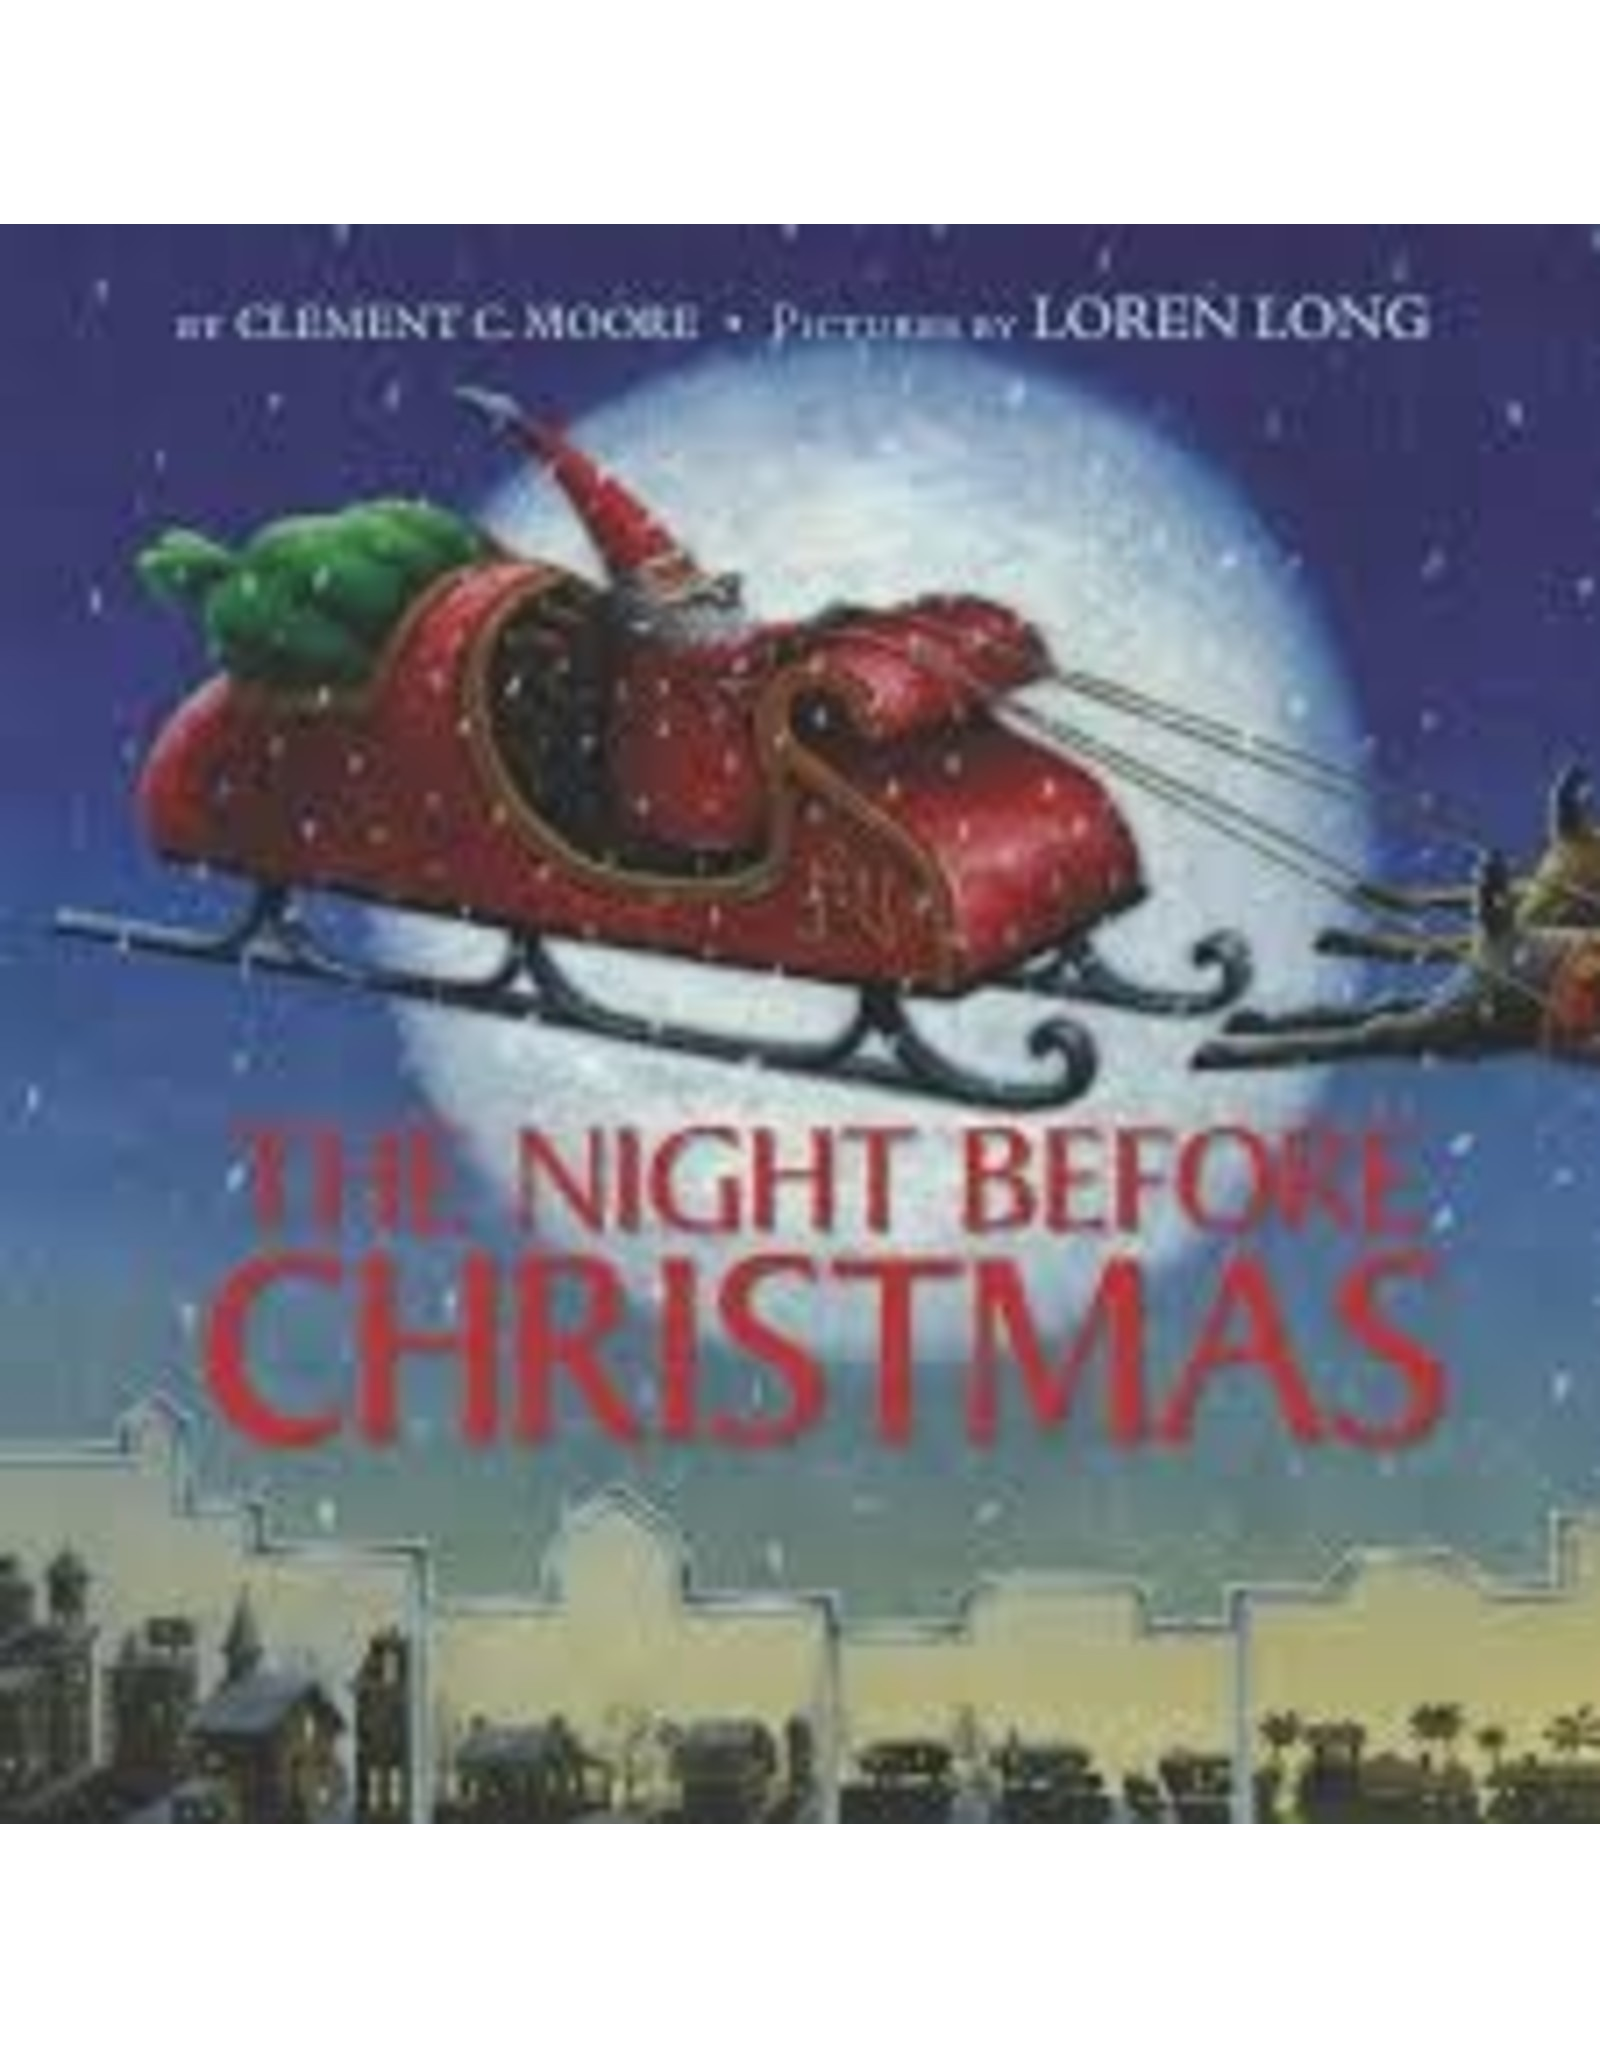 Books The Night Before Christmas by Clement C. Moore (Signed First Edition) (Holiday Catalog)